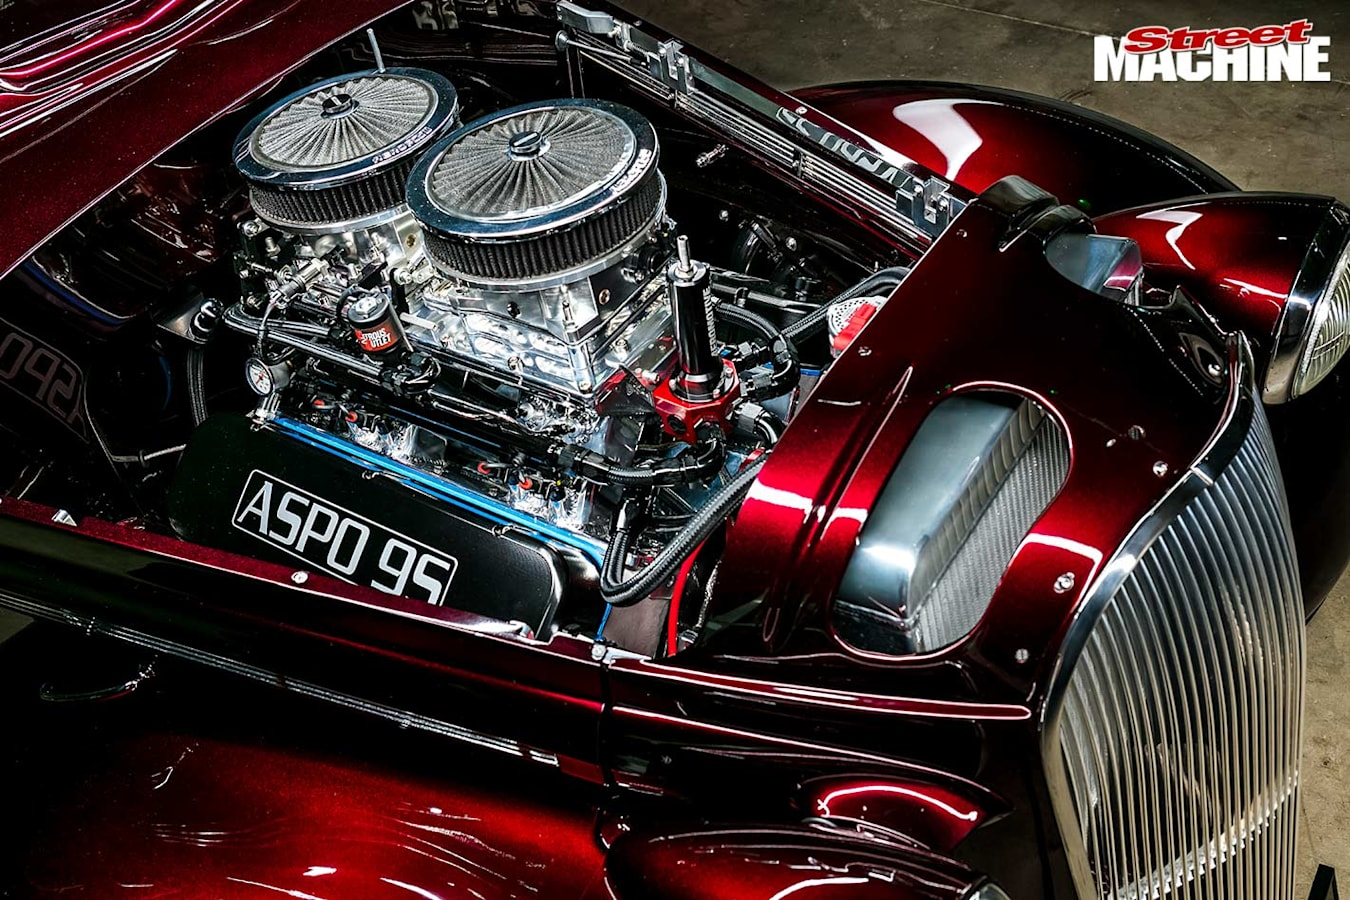 Plymouth coupe engine bay